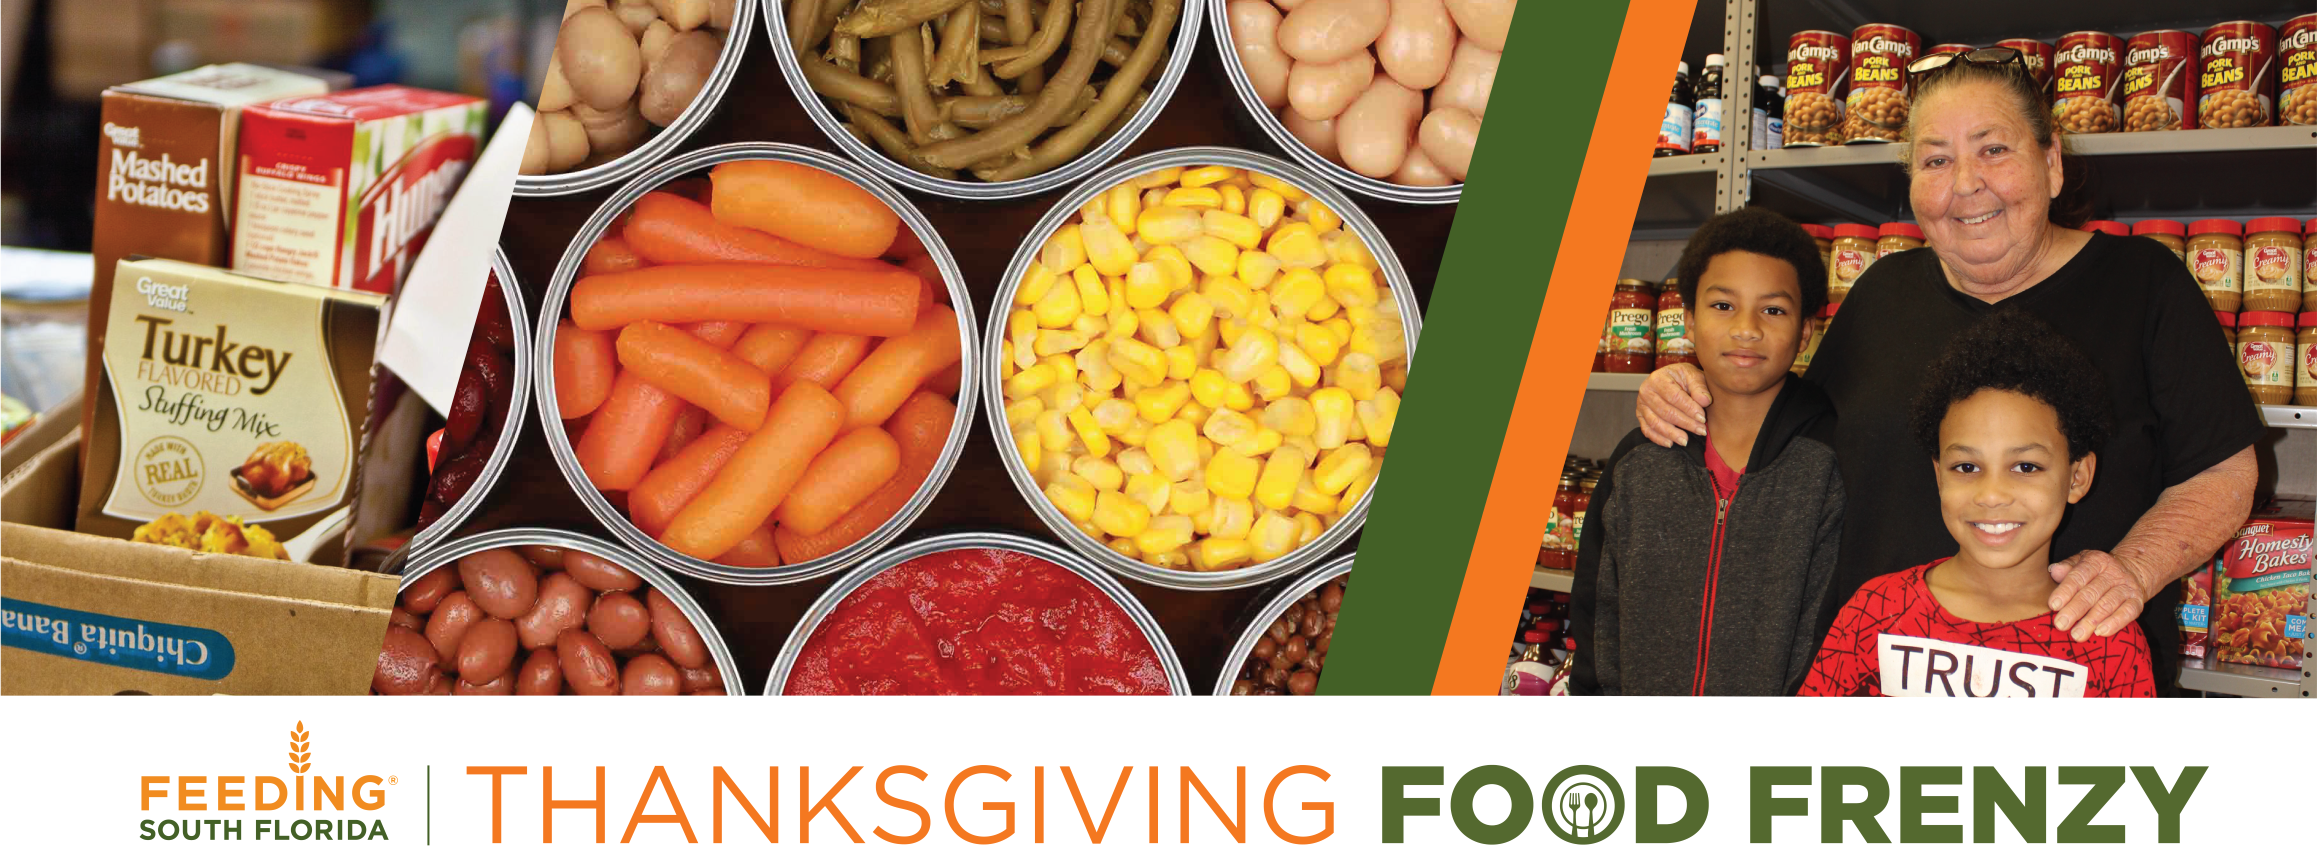 2020 Feeding South Florida Thanksgiving Food Frenzy